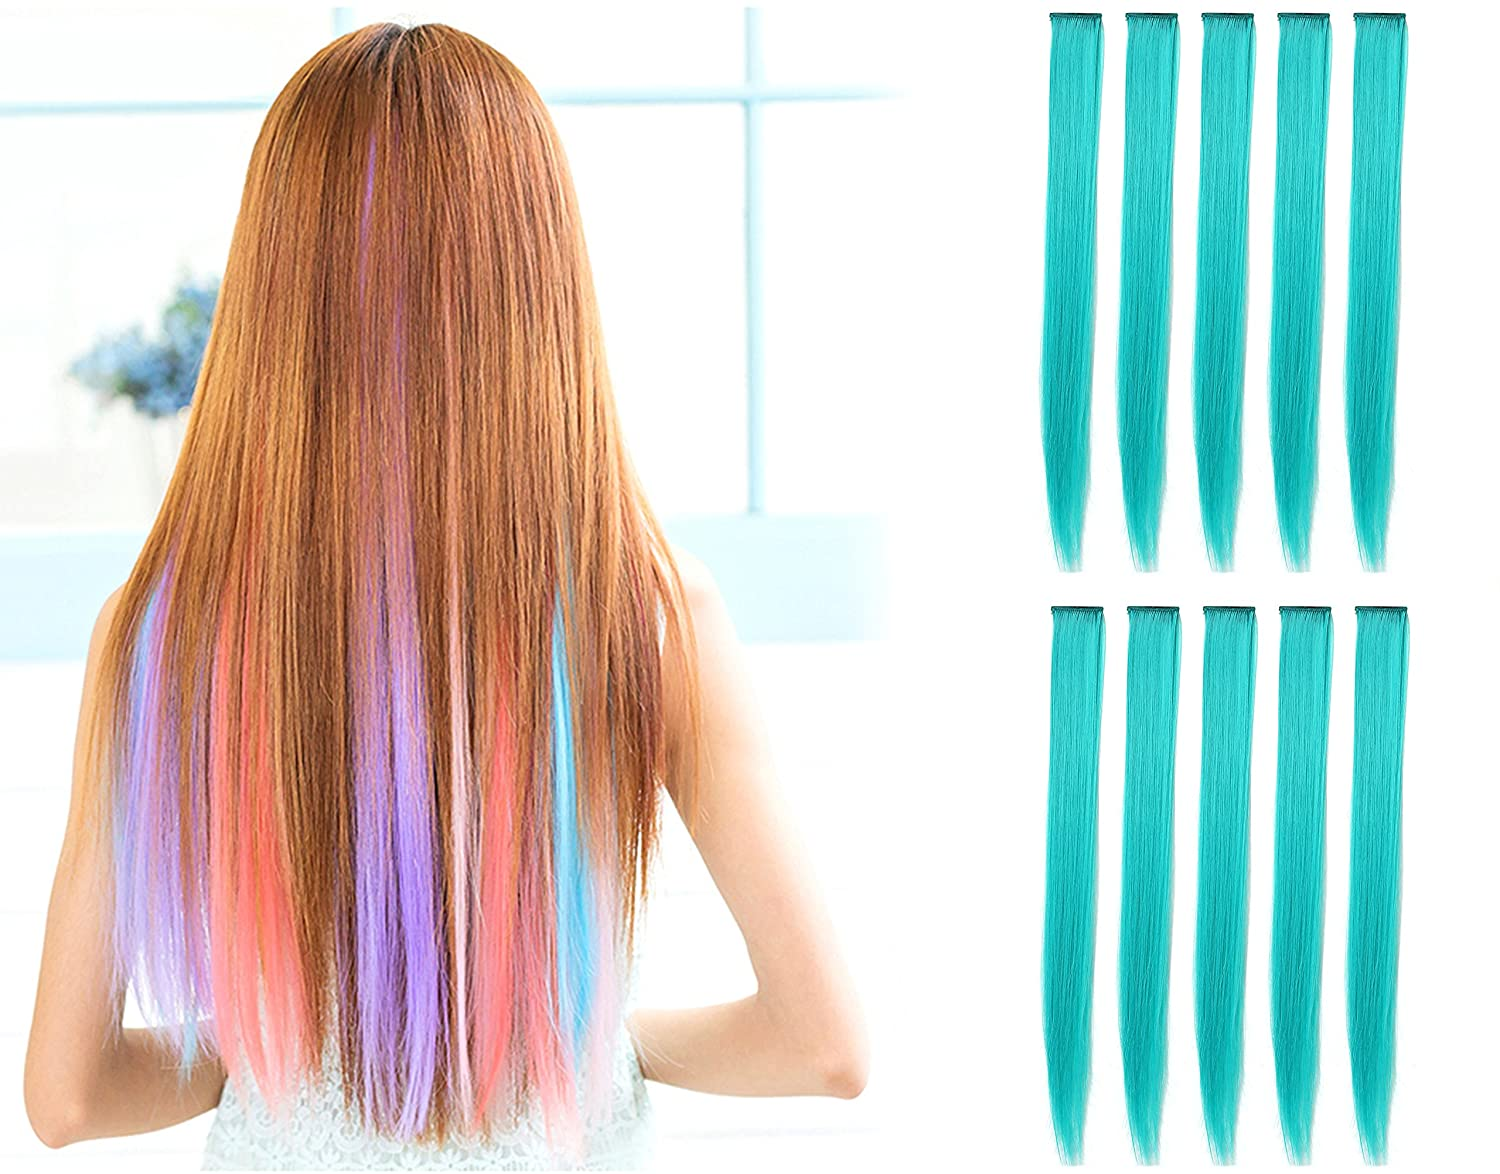 OneDor 23 Inch Colored Party Highlights Straight Hair Clip Extensions. Heat-Resistant Synthetic Hair Extensions in Multiple Colors (10 Pcs Heather Violet)